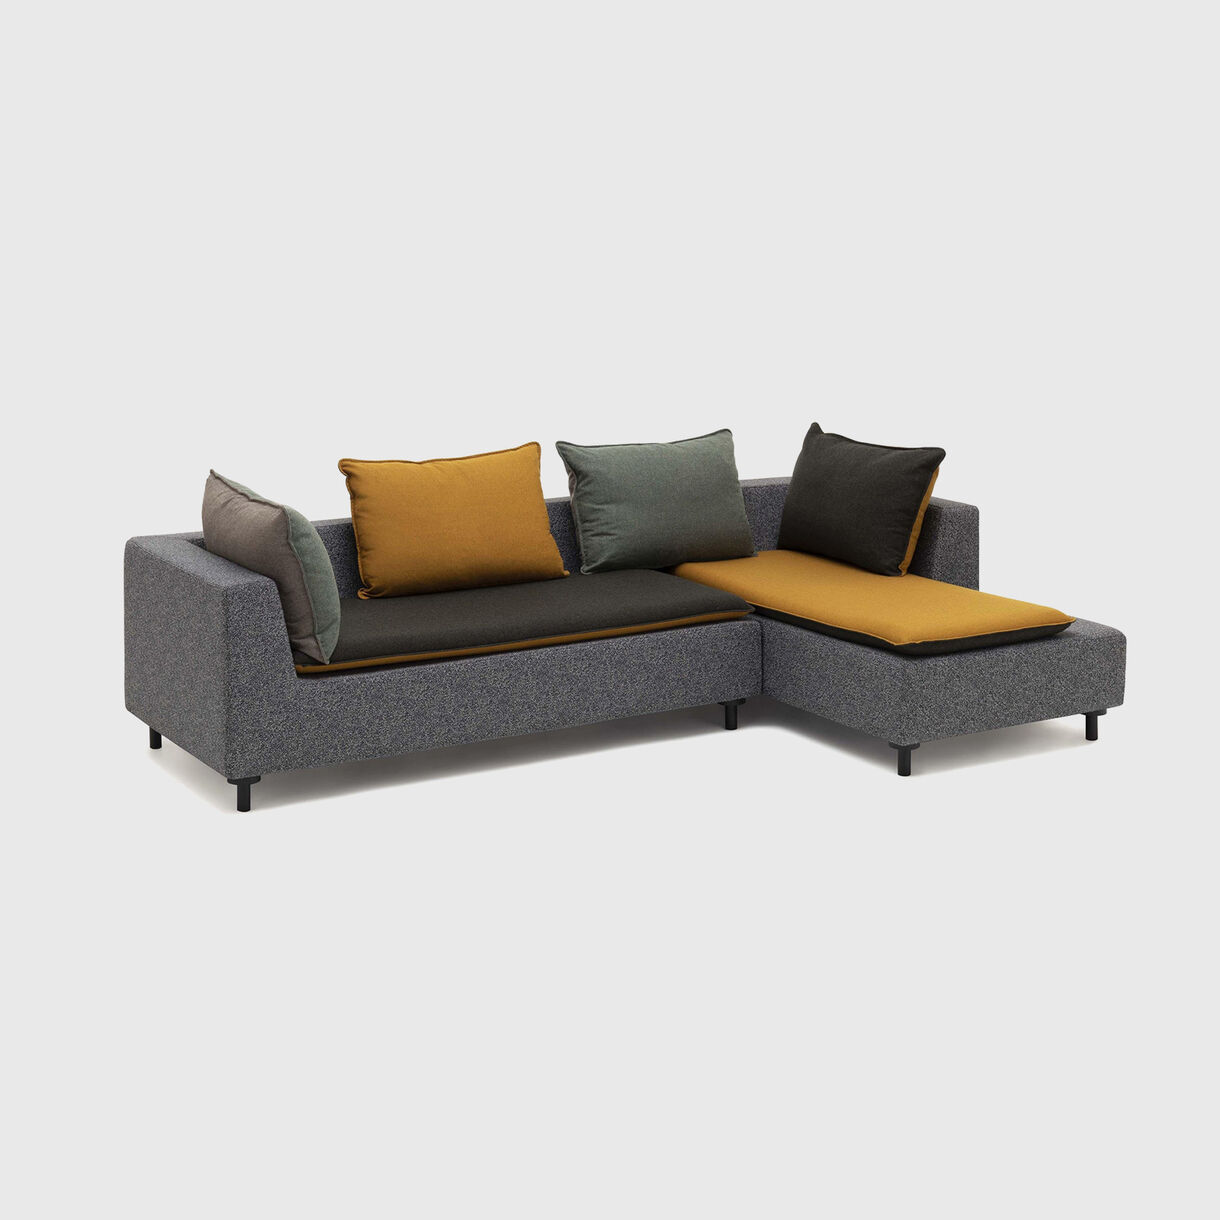 Barbican Corner Sofa, Ochre & Dark Green